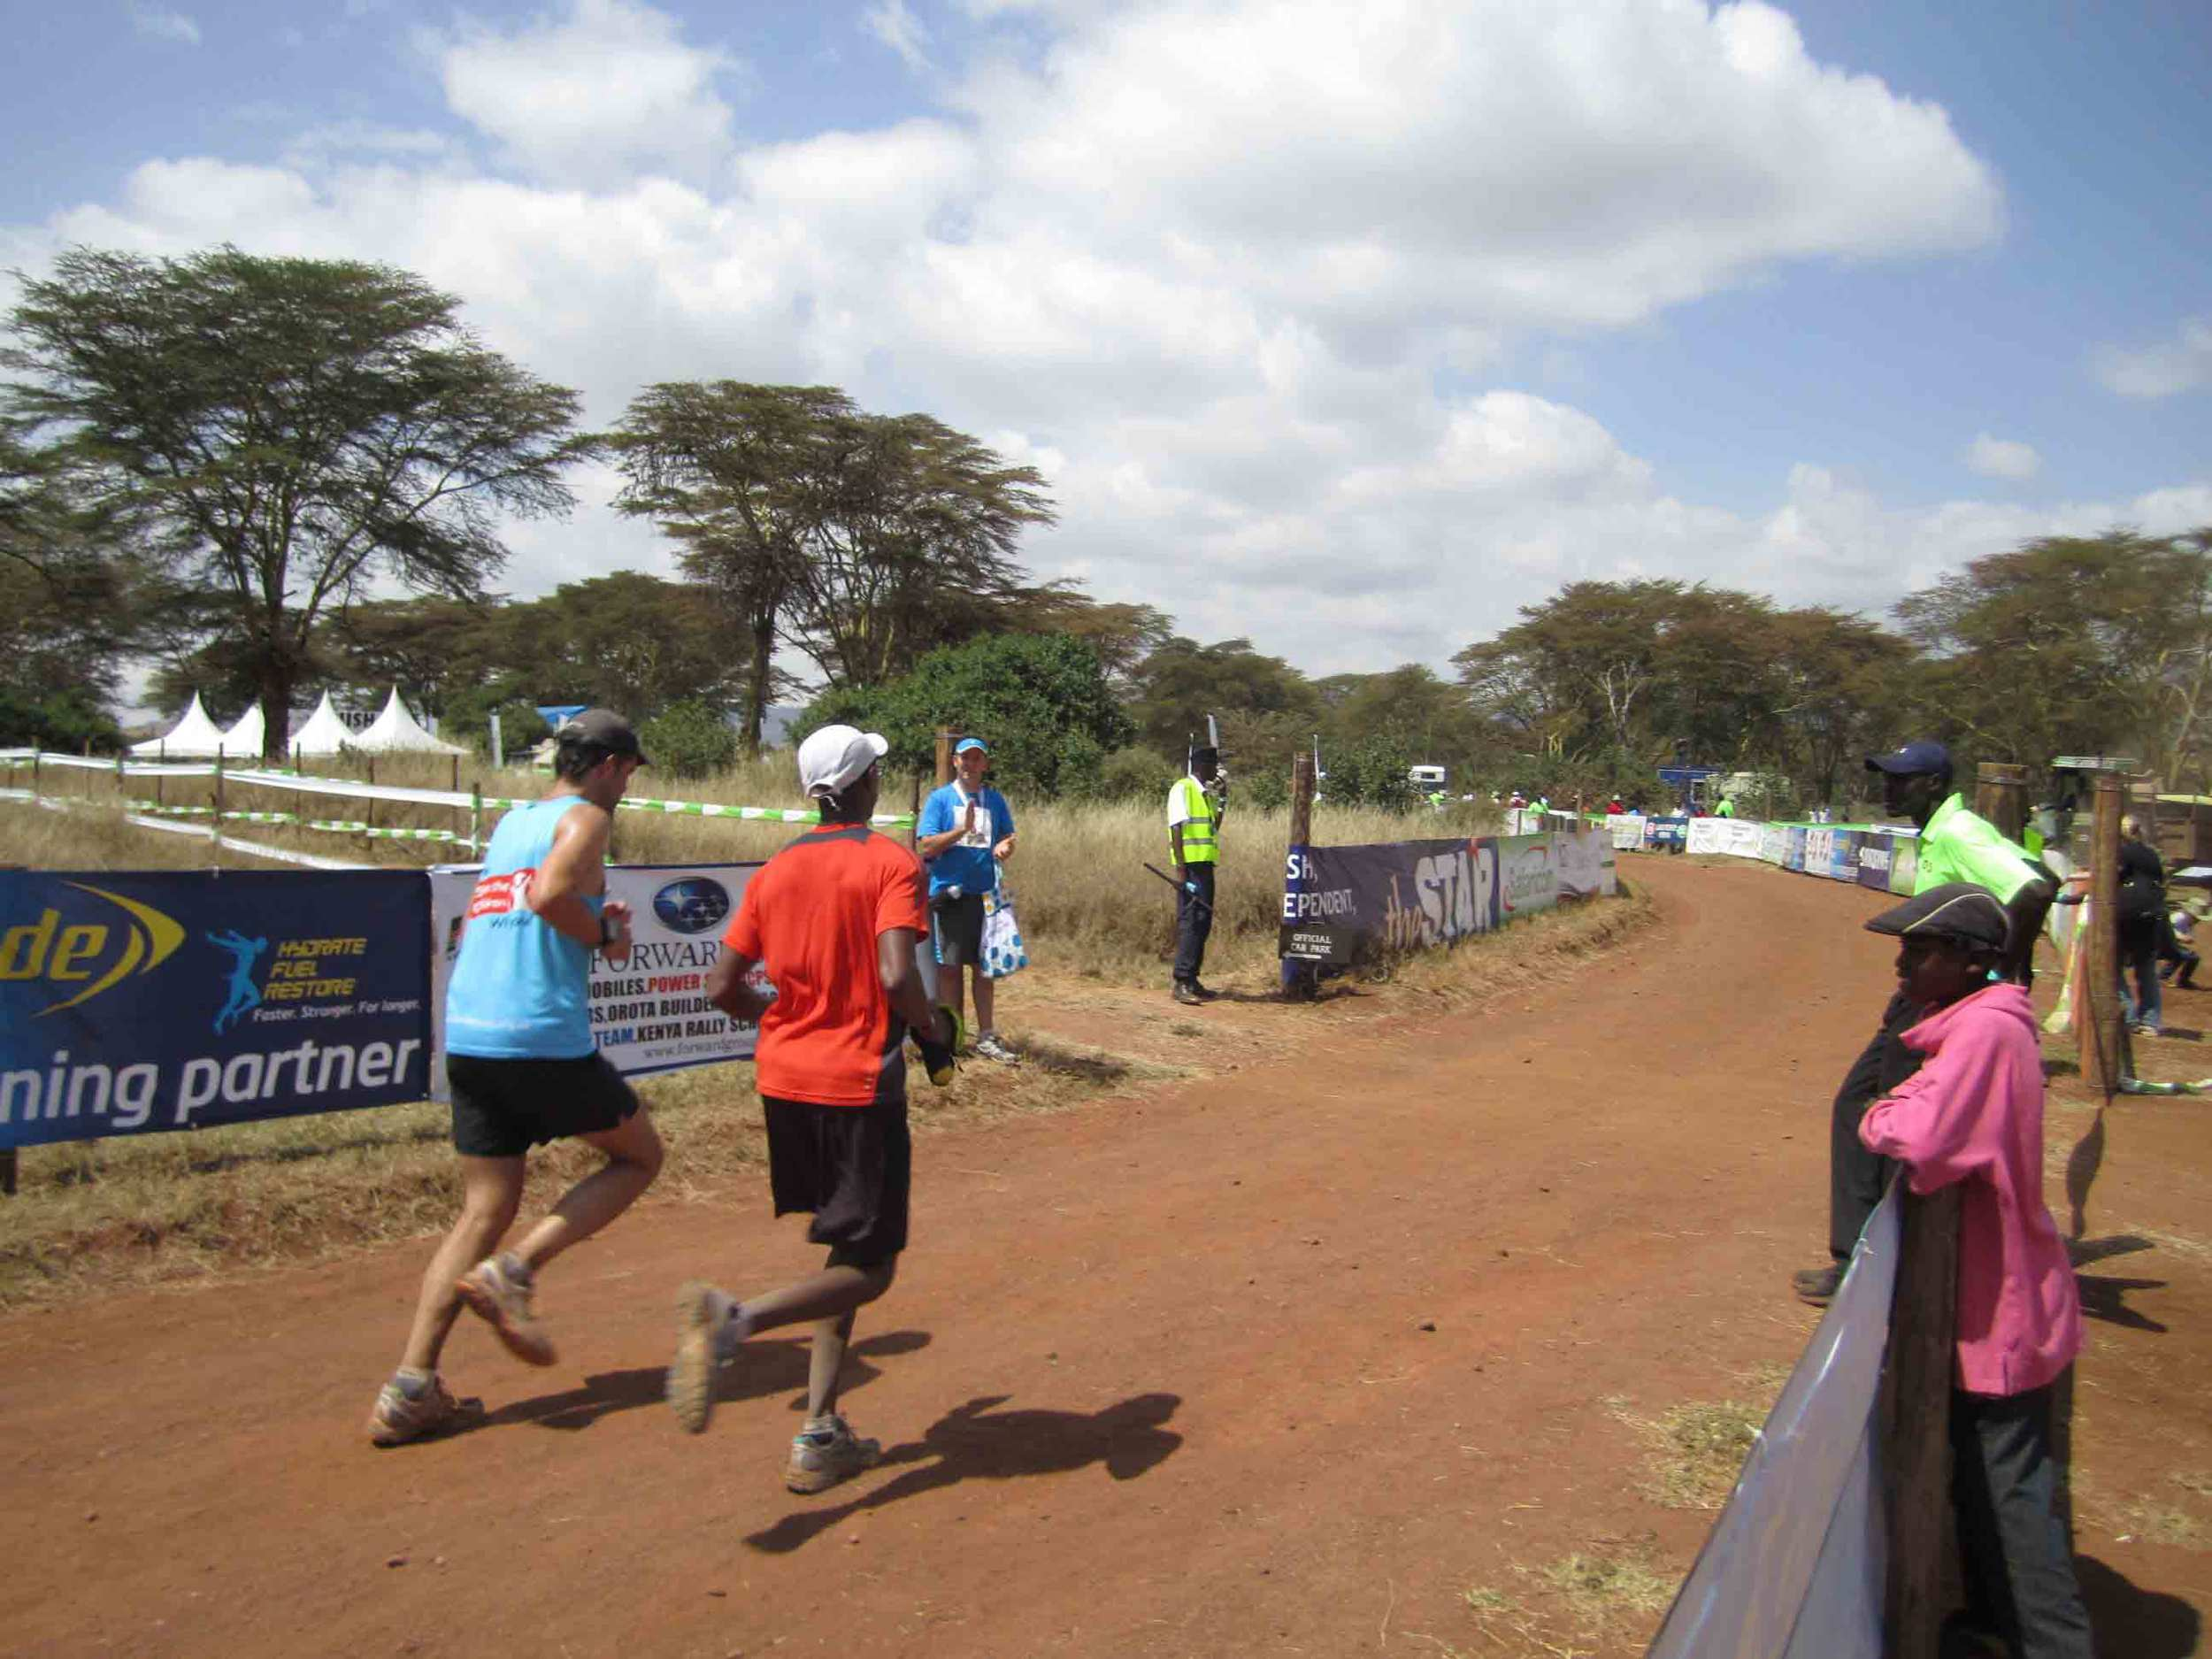 A four-hour trip north of Nairobi brings you to the site of your Half-Marathon or Full-Marathon at the Lewa Game Reserve. Endurance Coach Cory Nyamora (in red) at the 2012 Lewa Marathon